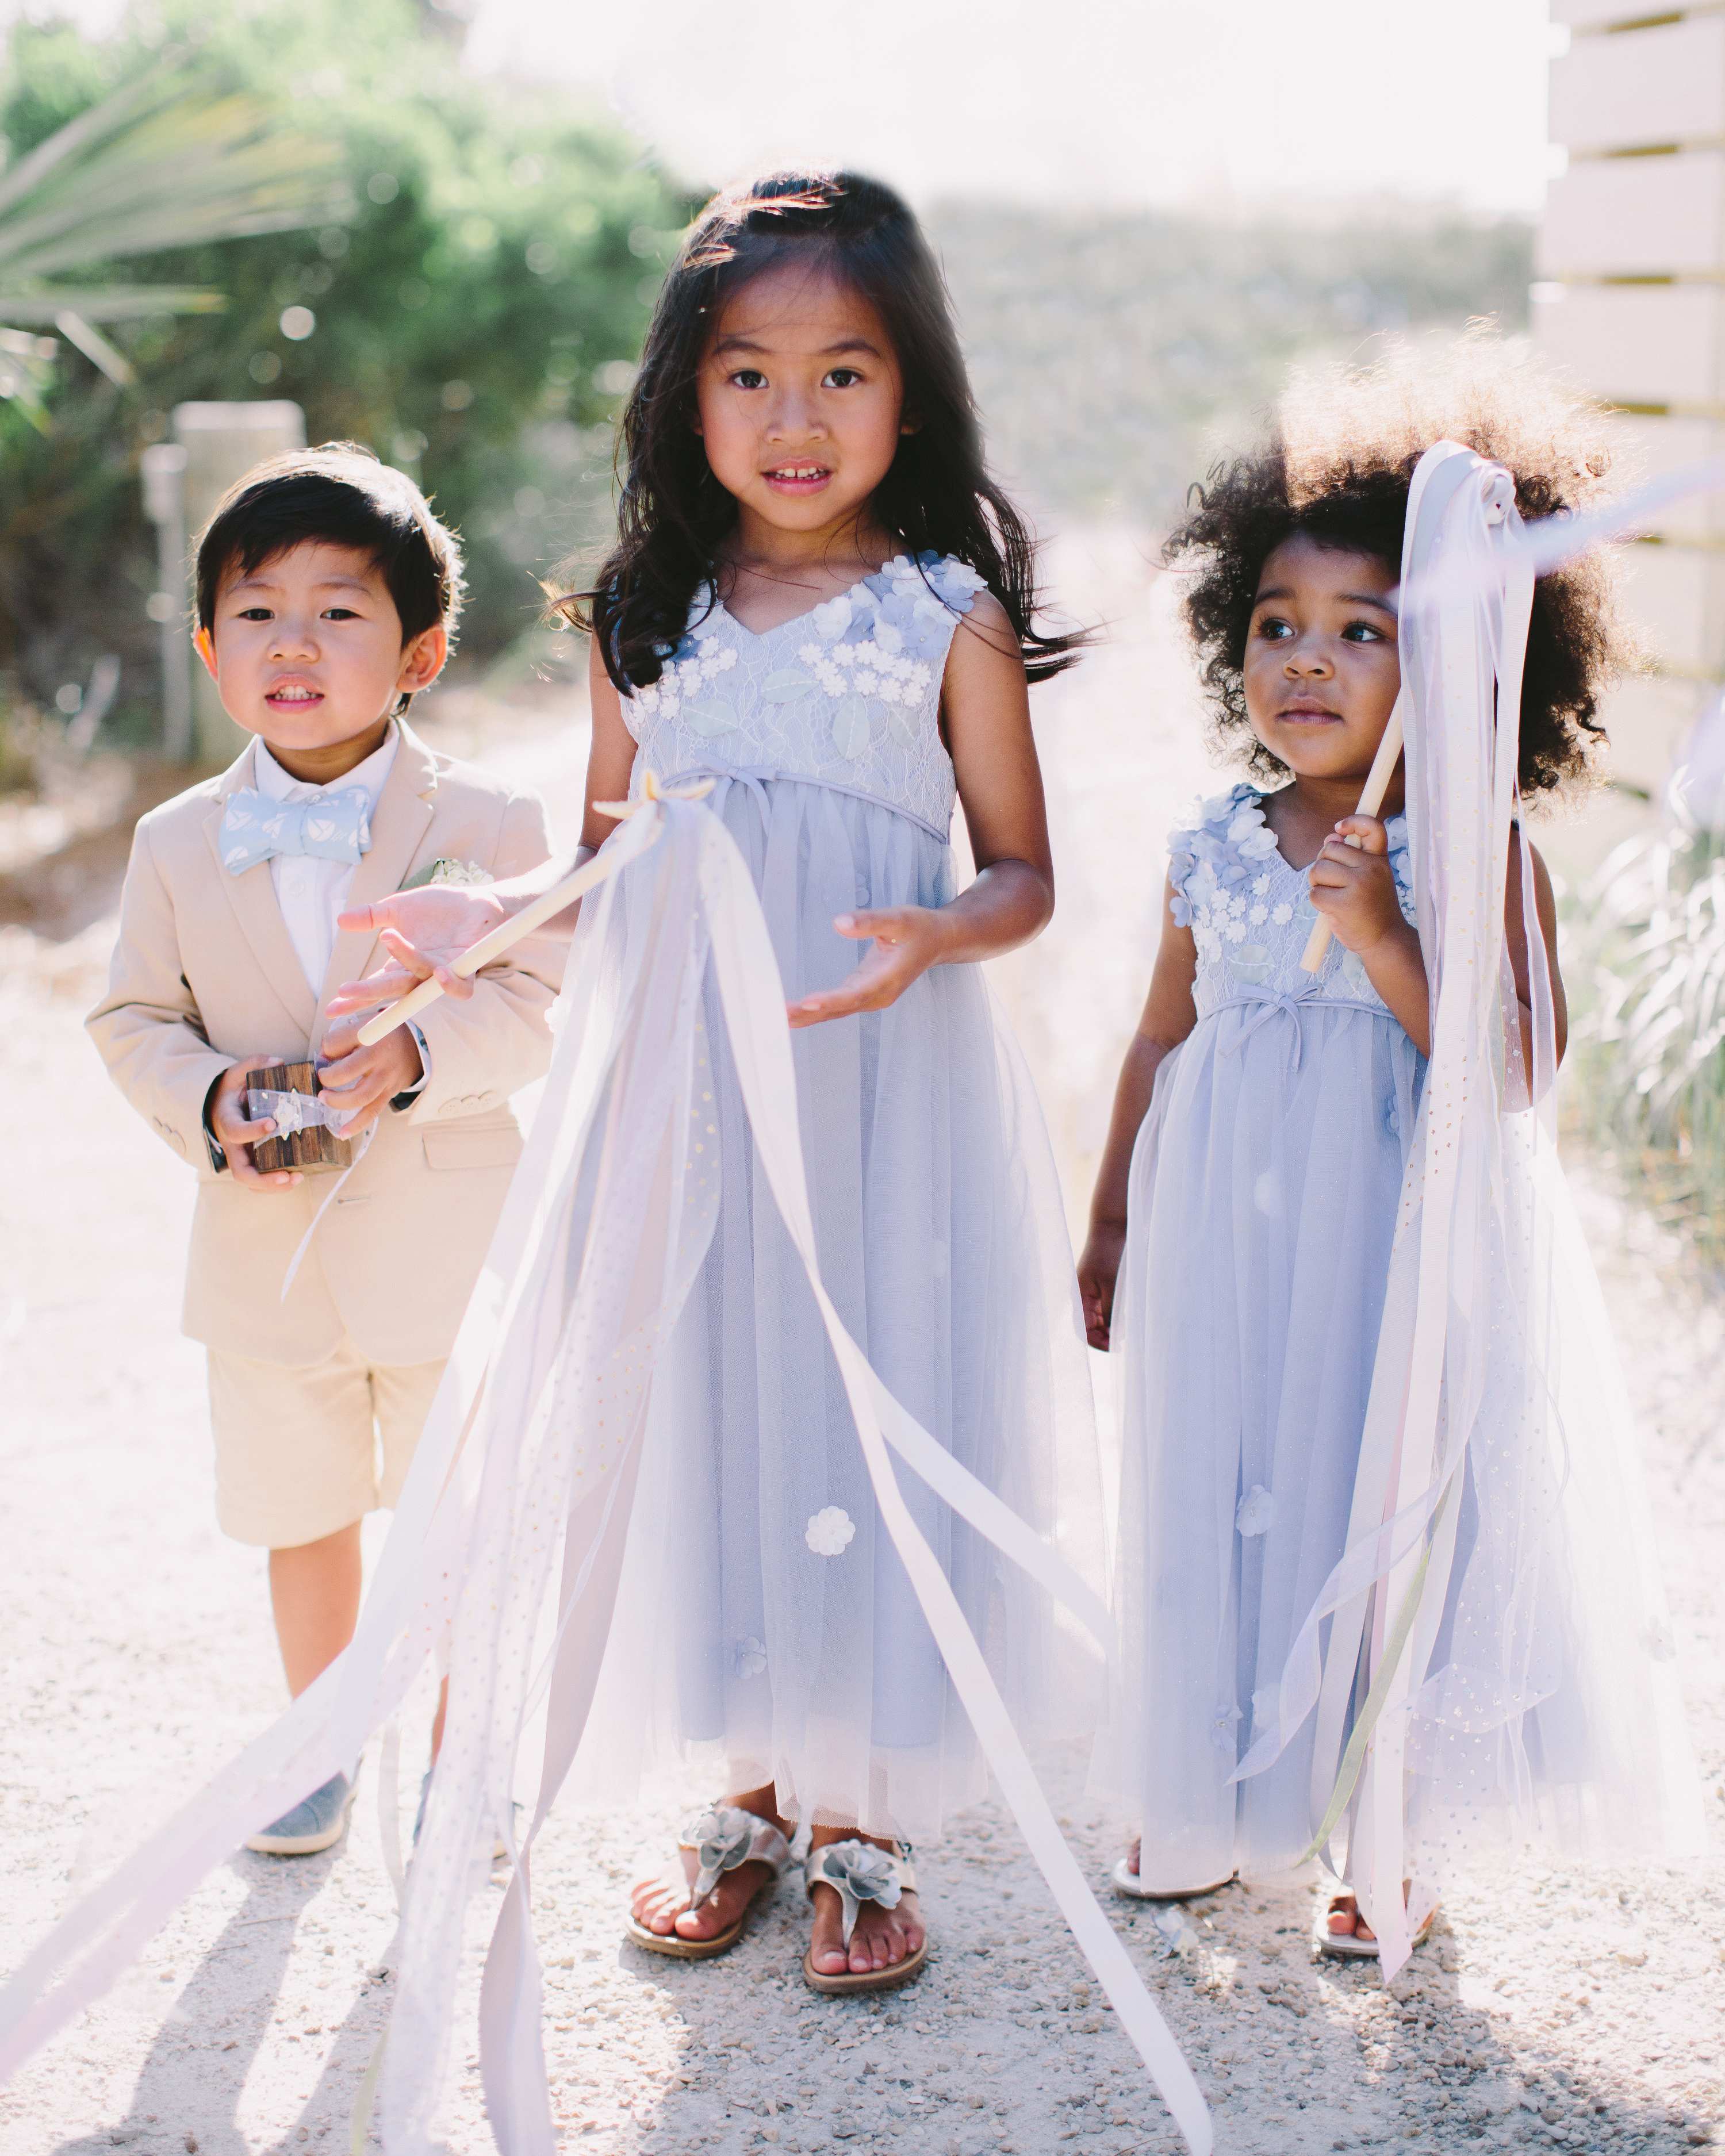 teresa-amanda-wedding-kids-9709-s111694-1114.jpg